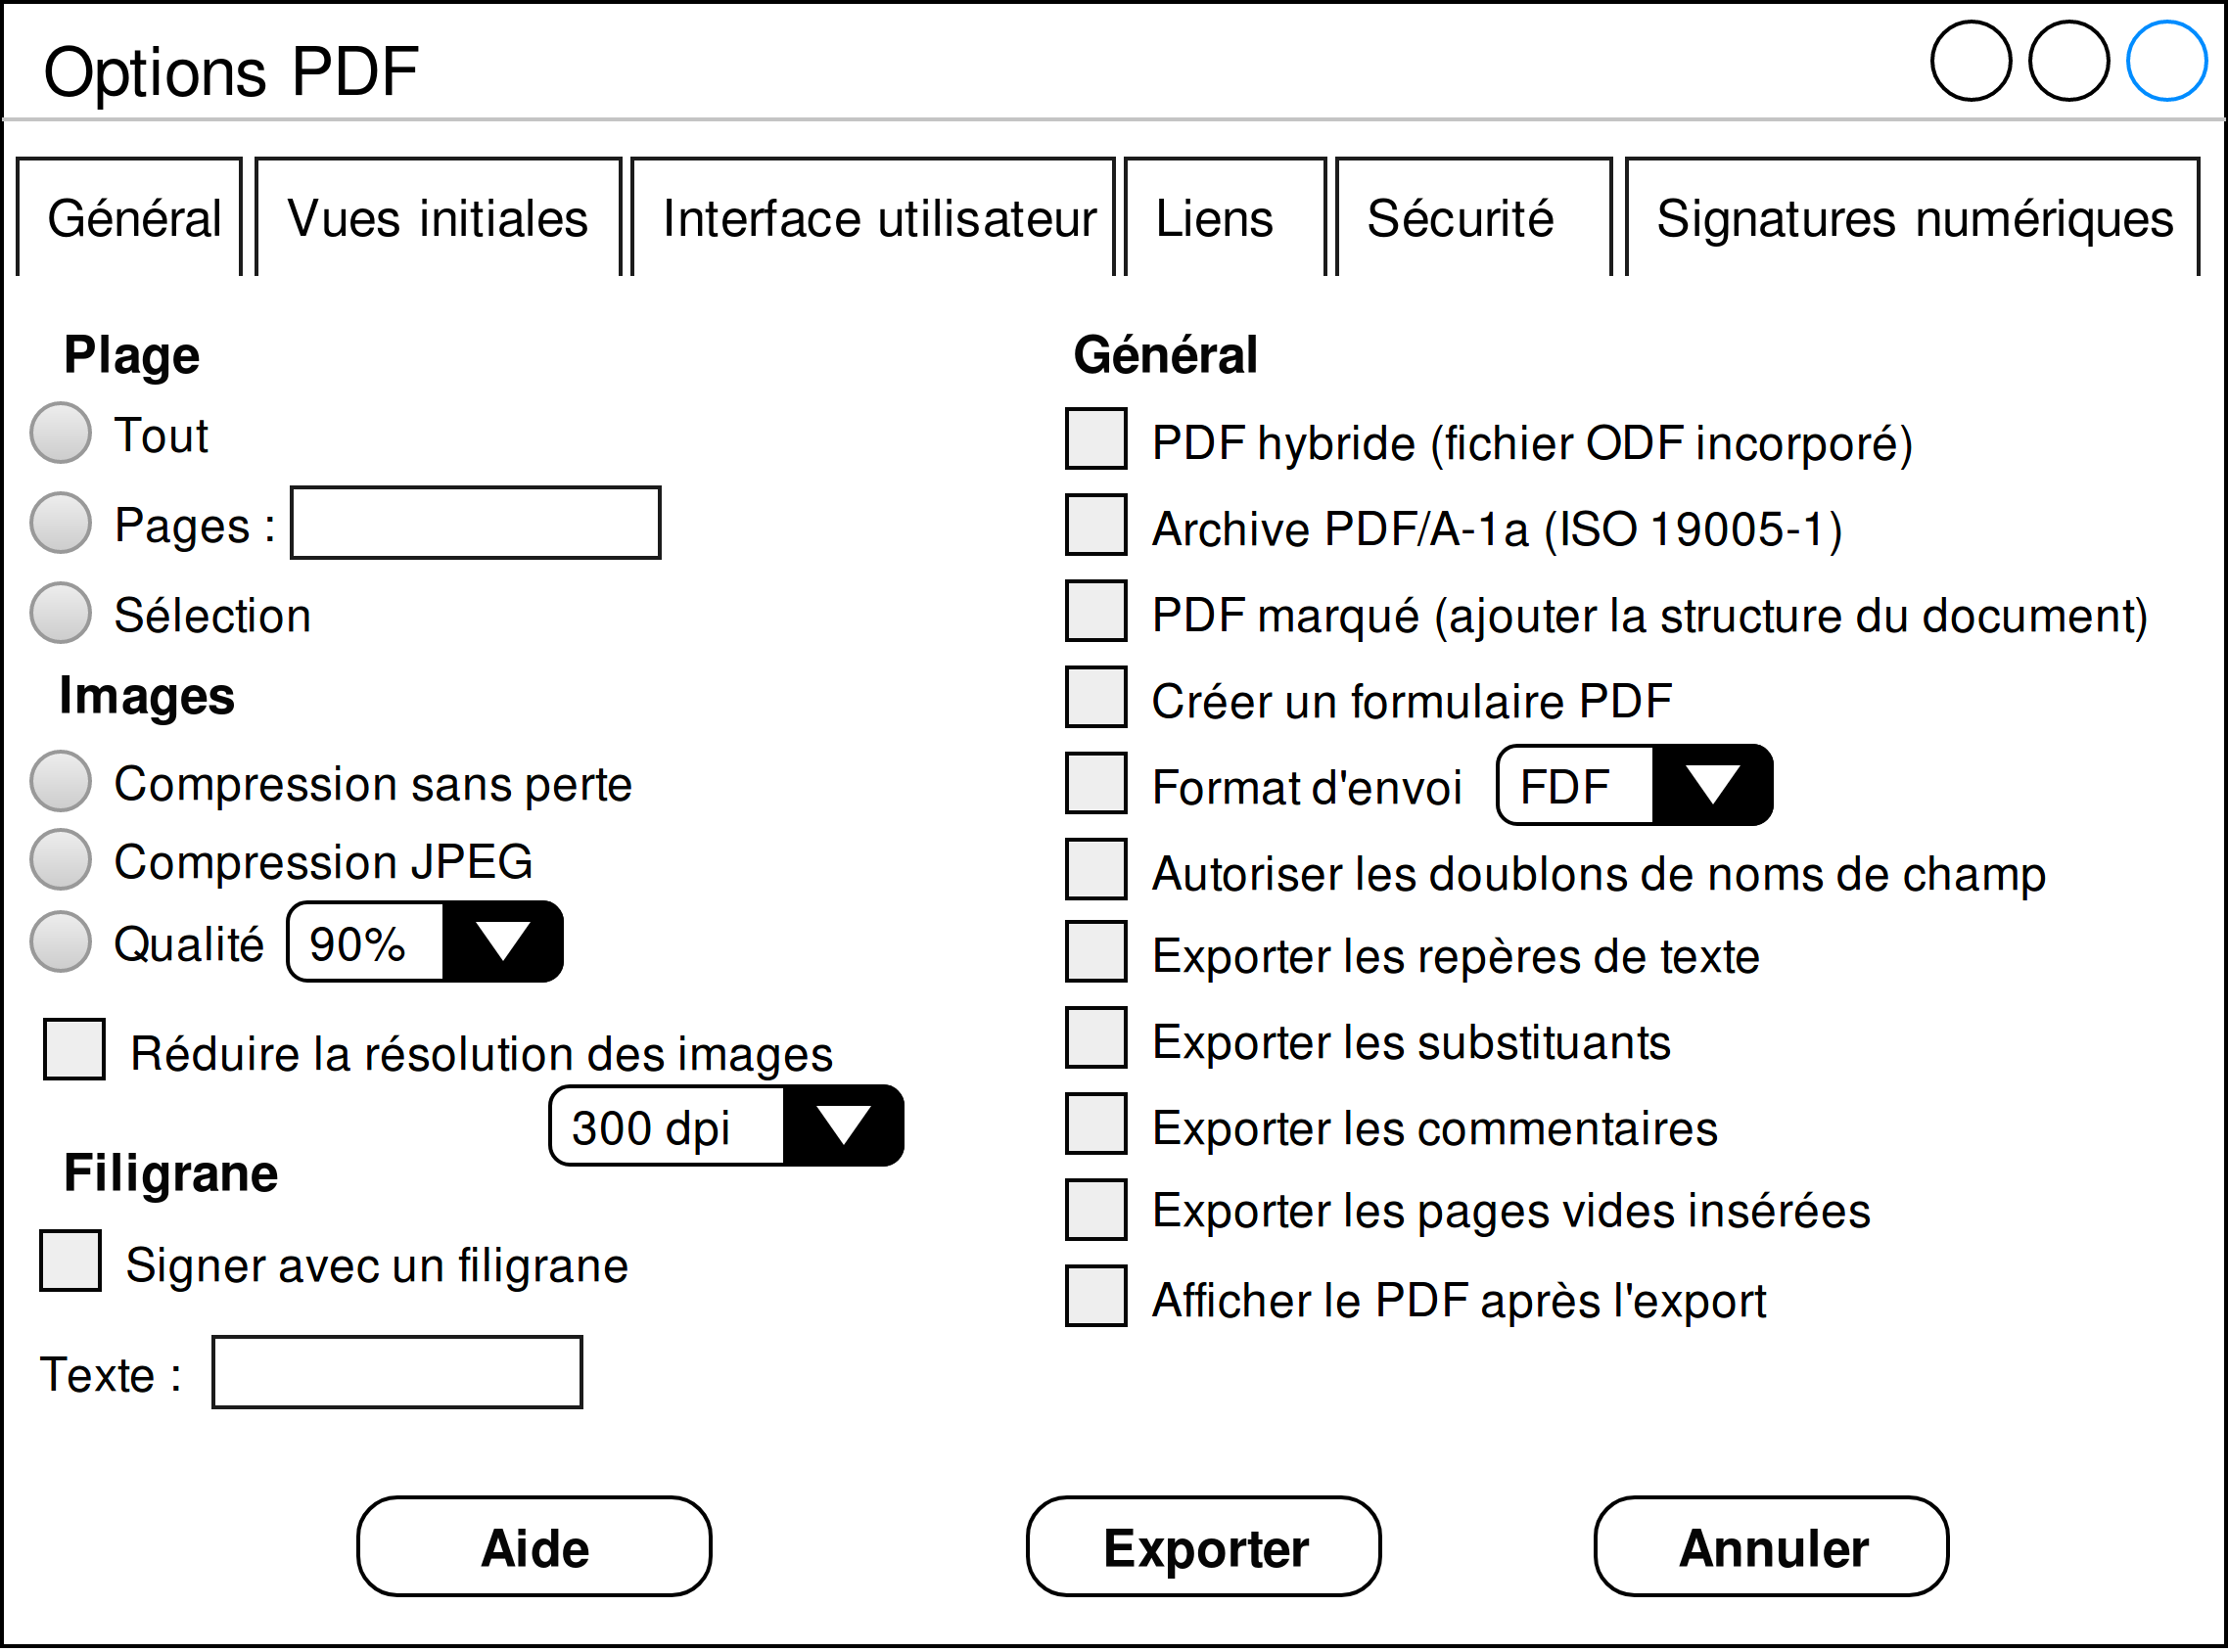 TEX/images/libreofficeoptionsPDF.png